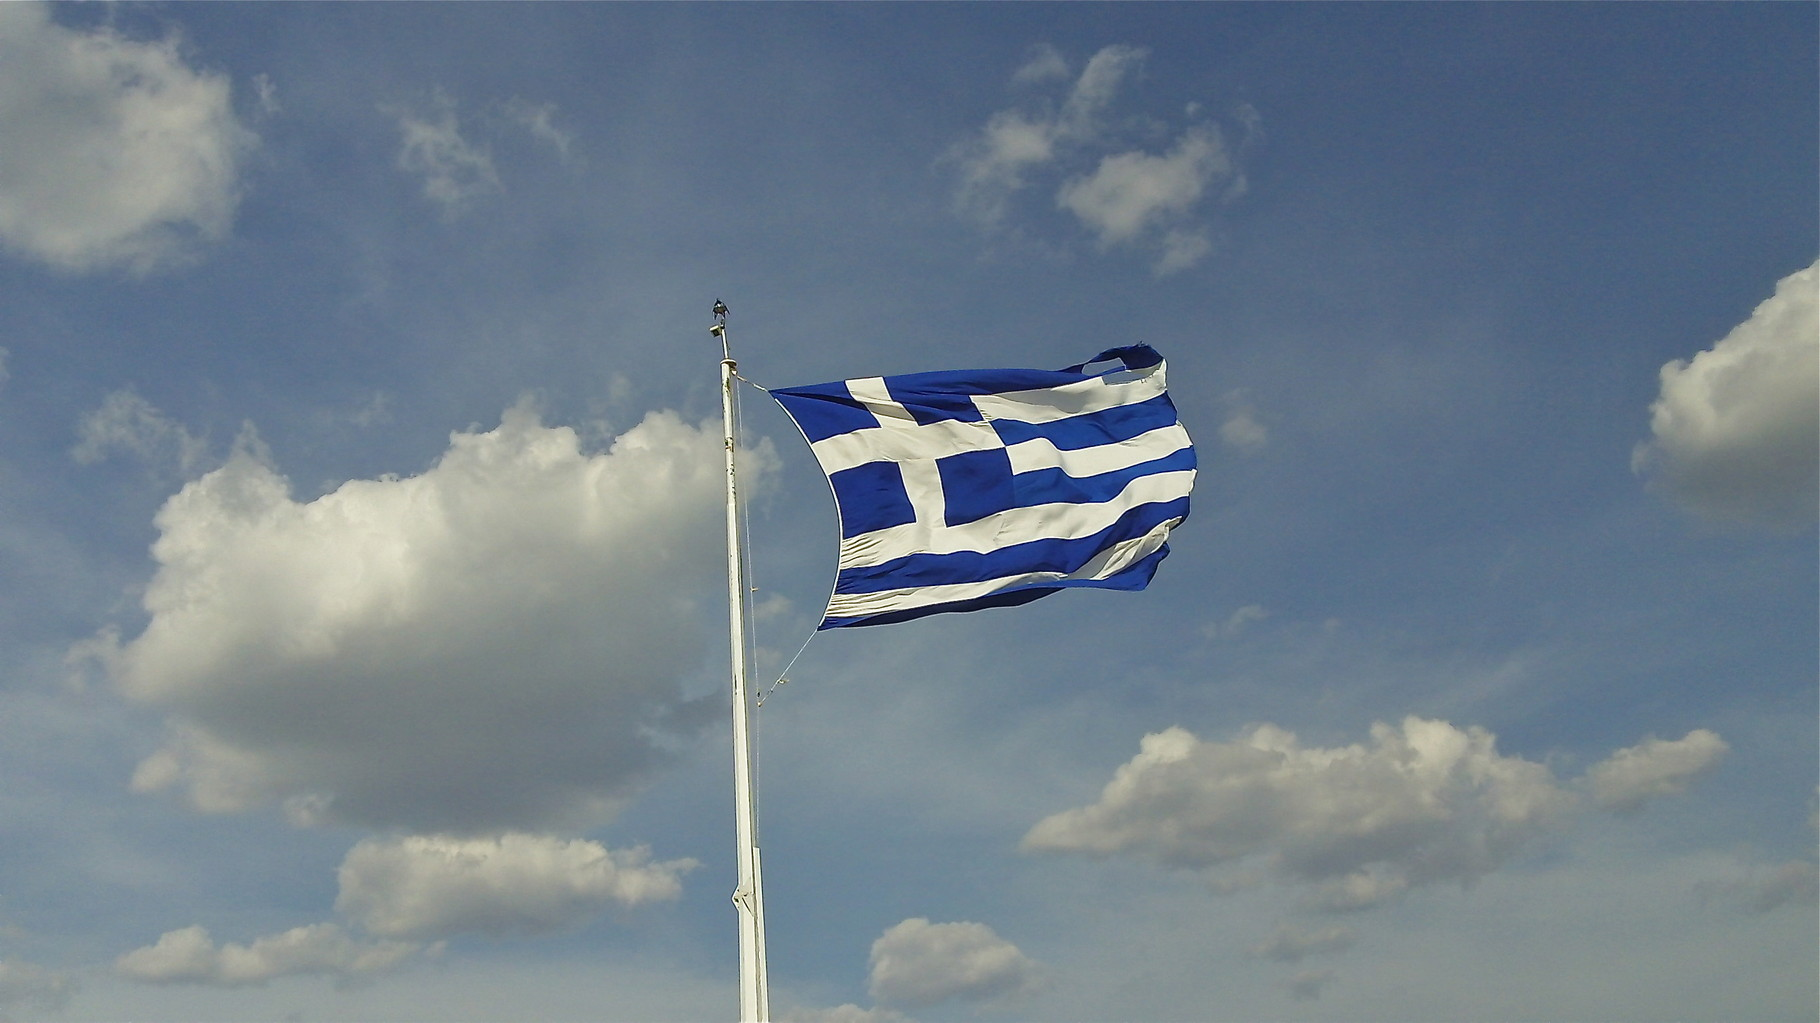 the Greek flag waves in the breeze at the Acropolis